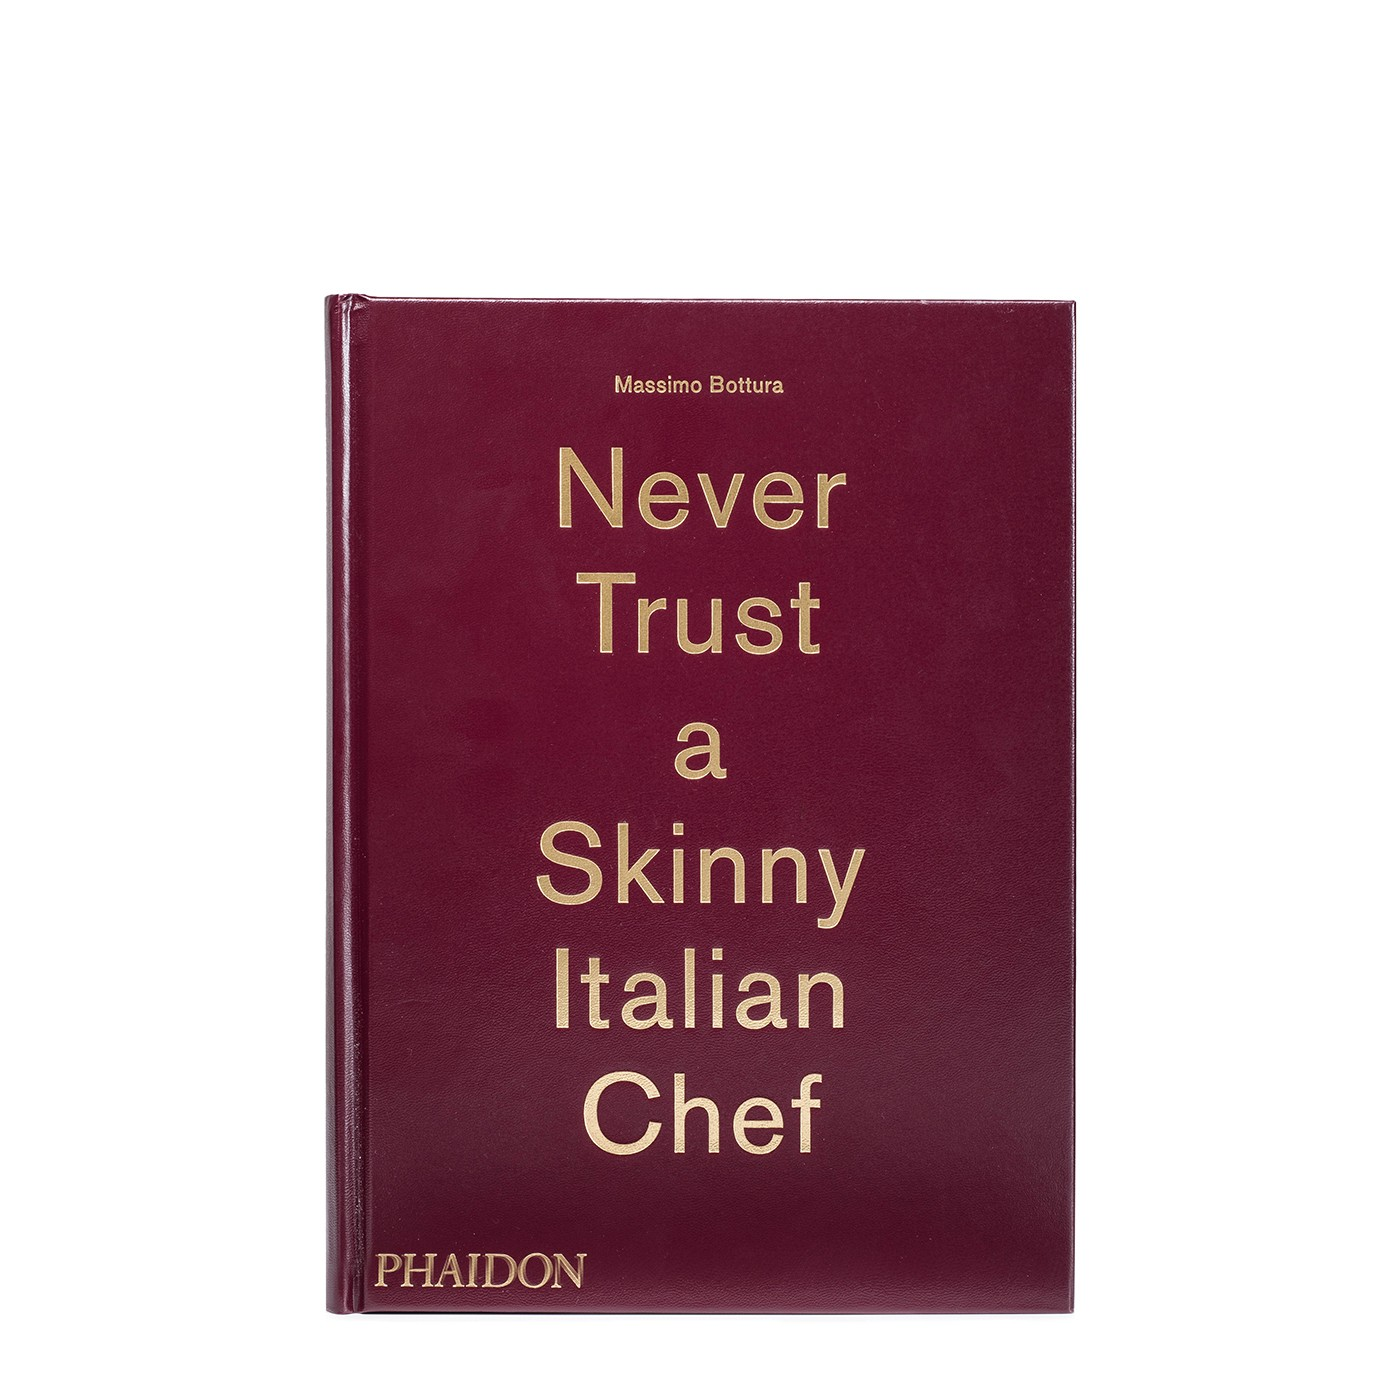 Never Trust A Skinny Italian Chef (hardcover)